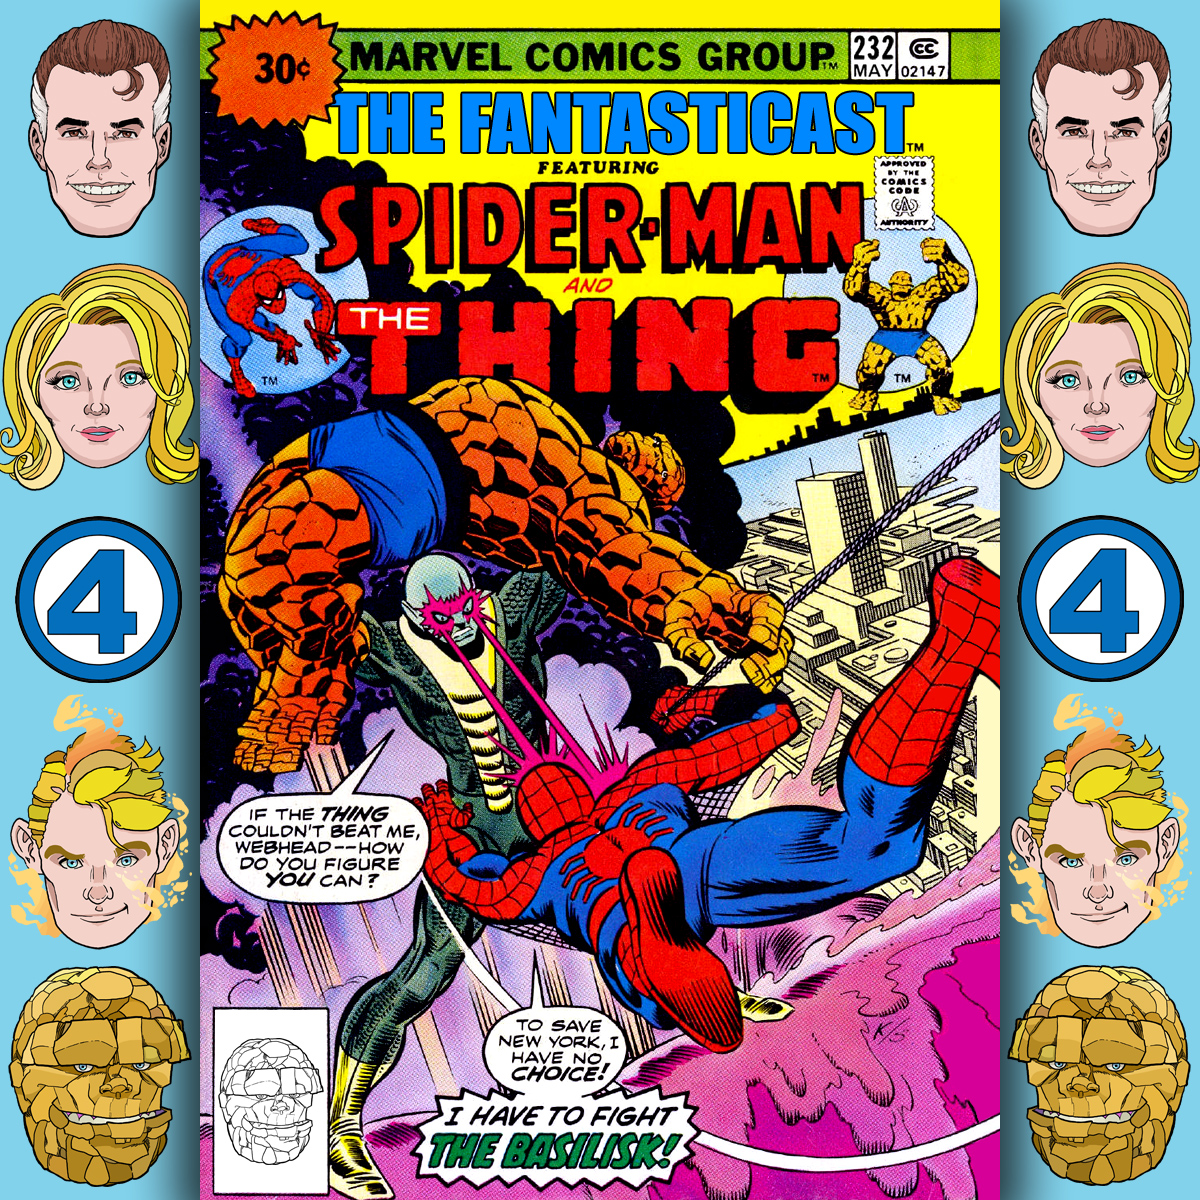 The Fantasticast Episode 232